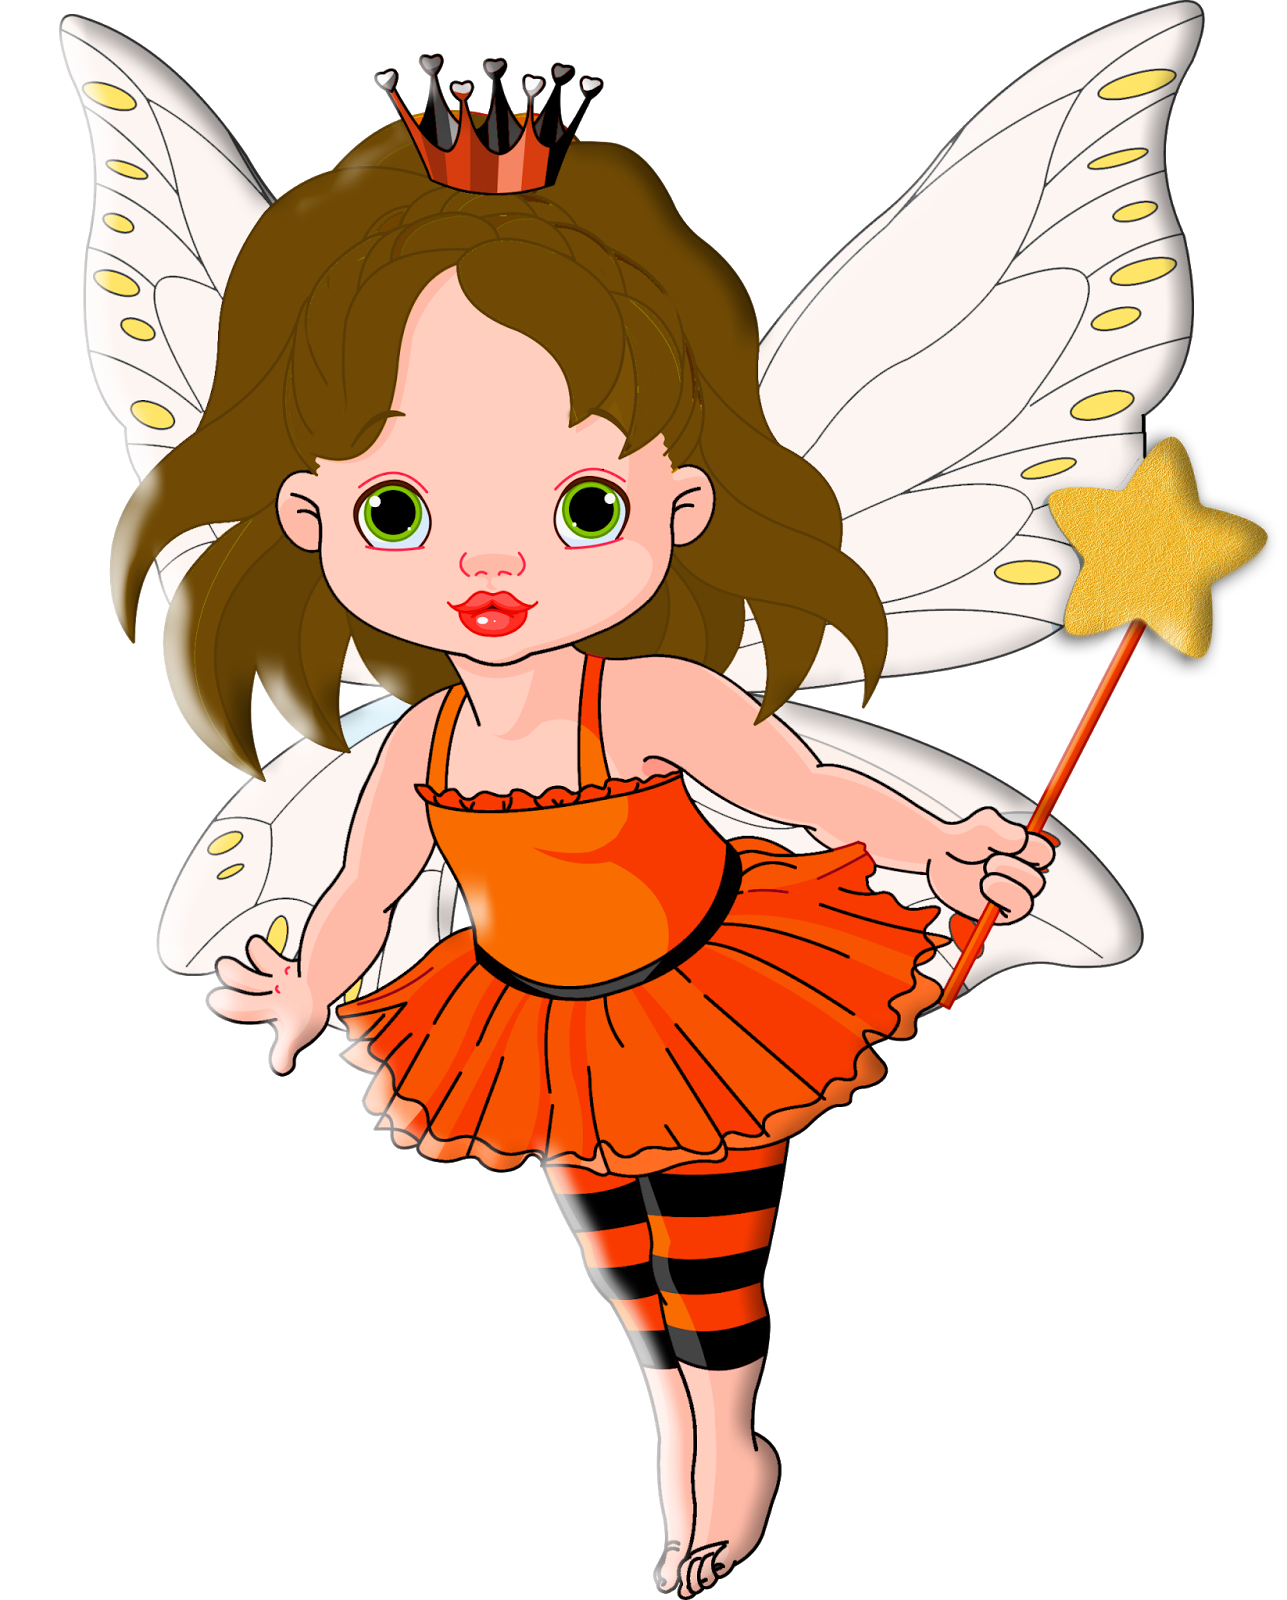 Princess and Fairytale Clipart. | Oh My Fiesta! in english